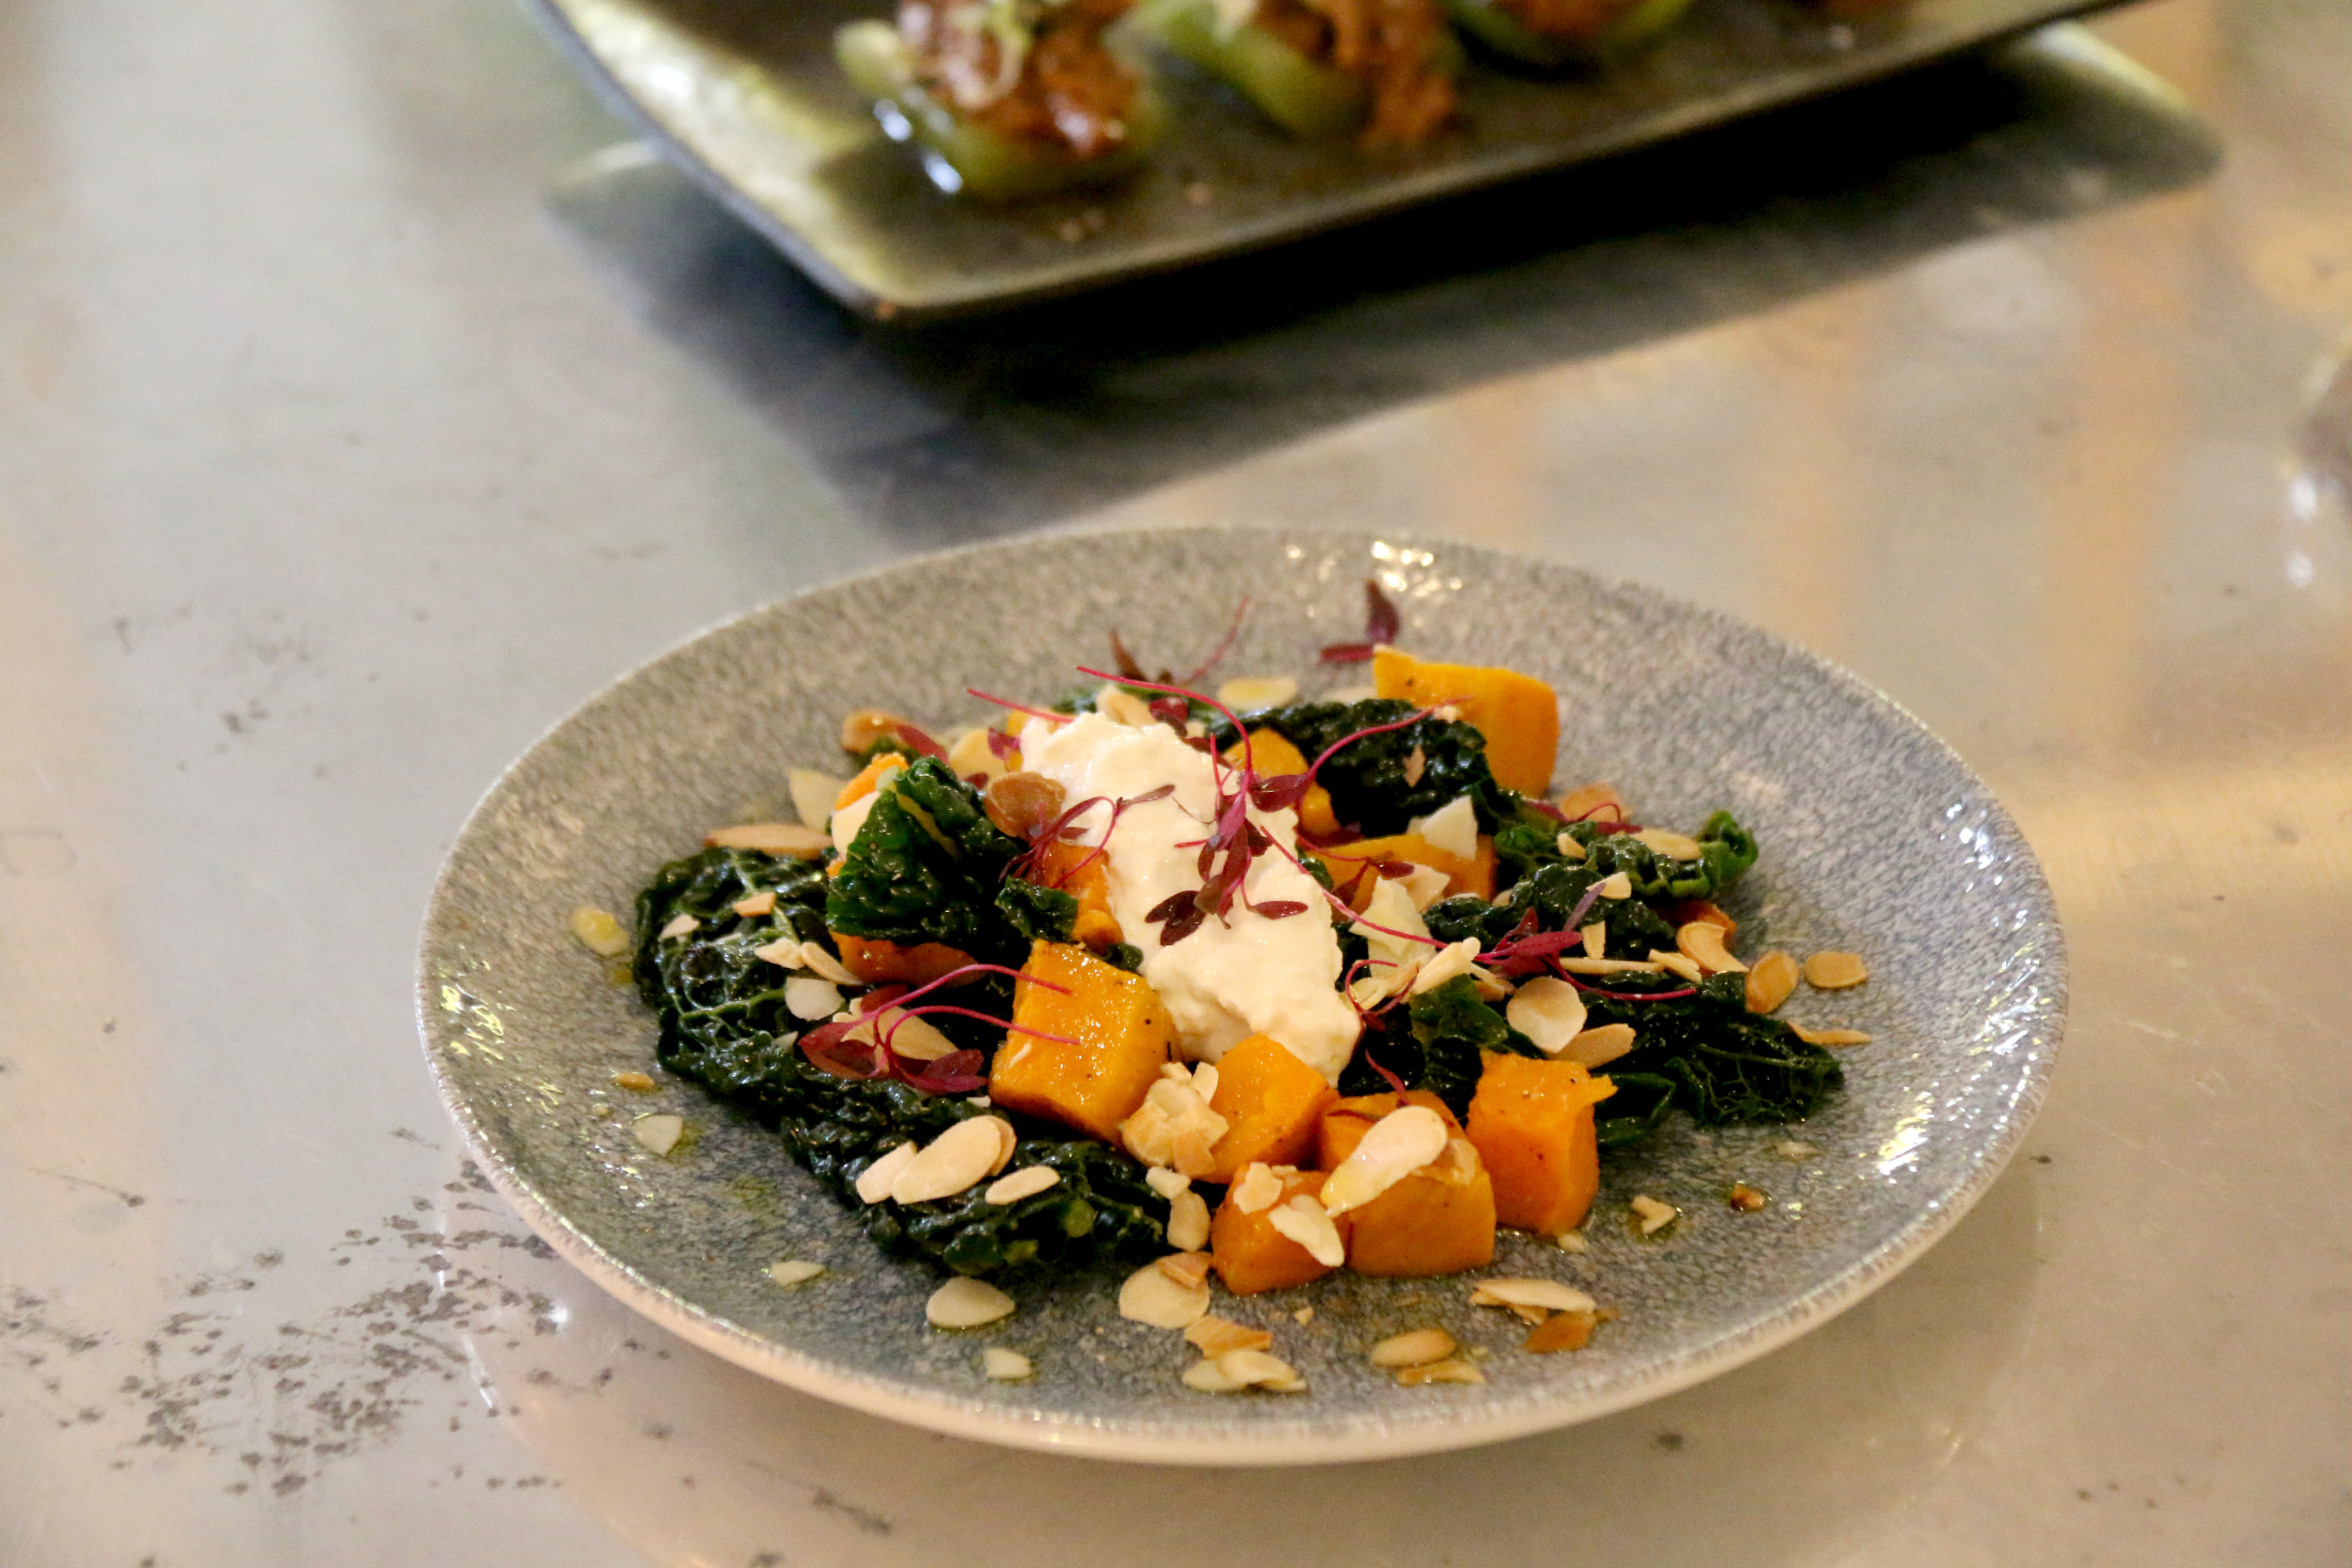 London Pomona restaurant Notting Hill butternut squash cavalo nero cottage cheese toasted almond flakes